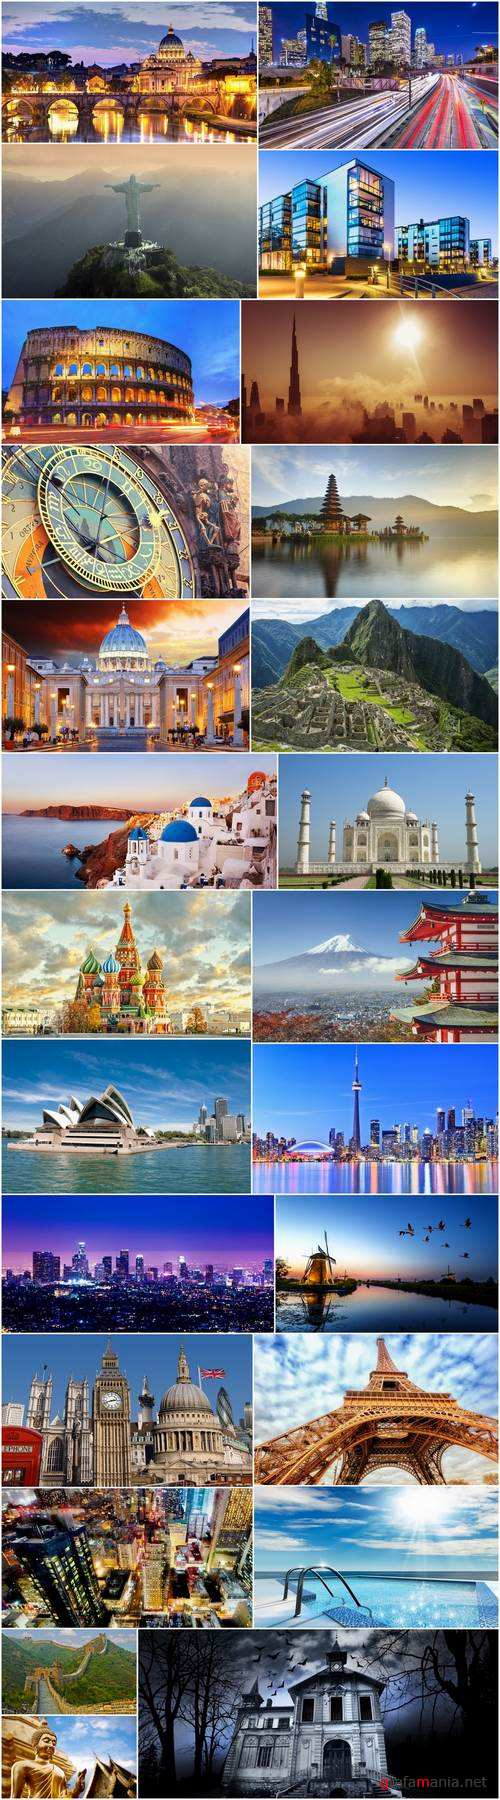 Architecture of different countries skyscraper historical building travel sights 25 HQ Jpeg